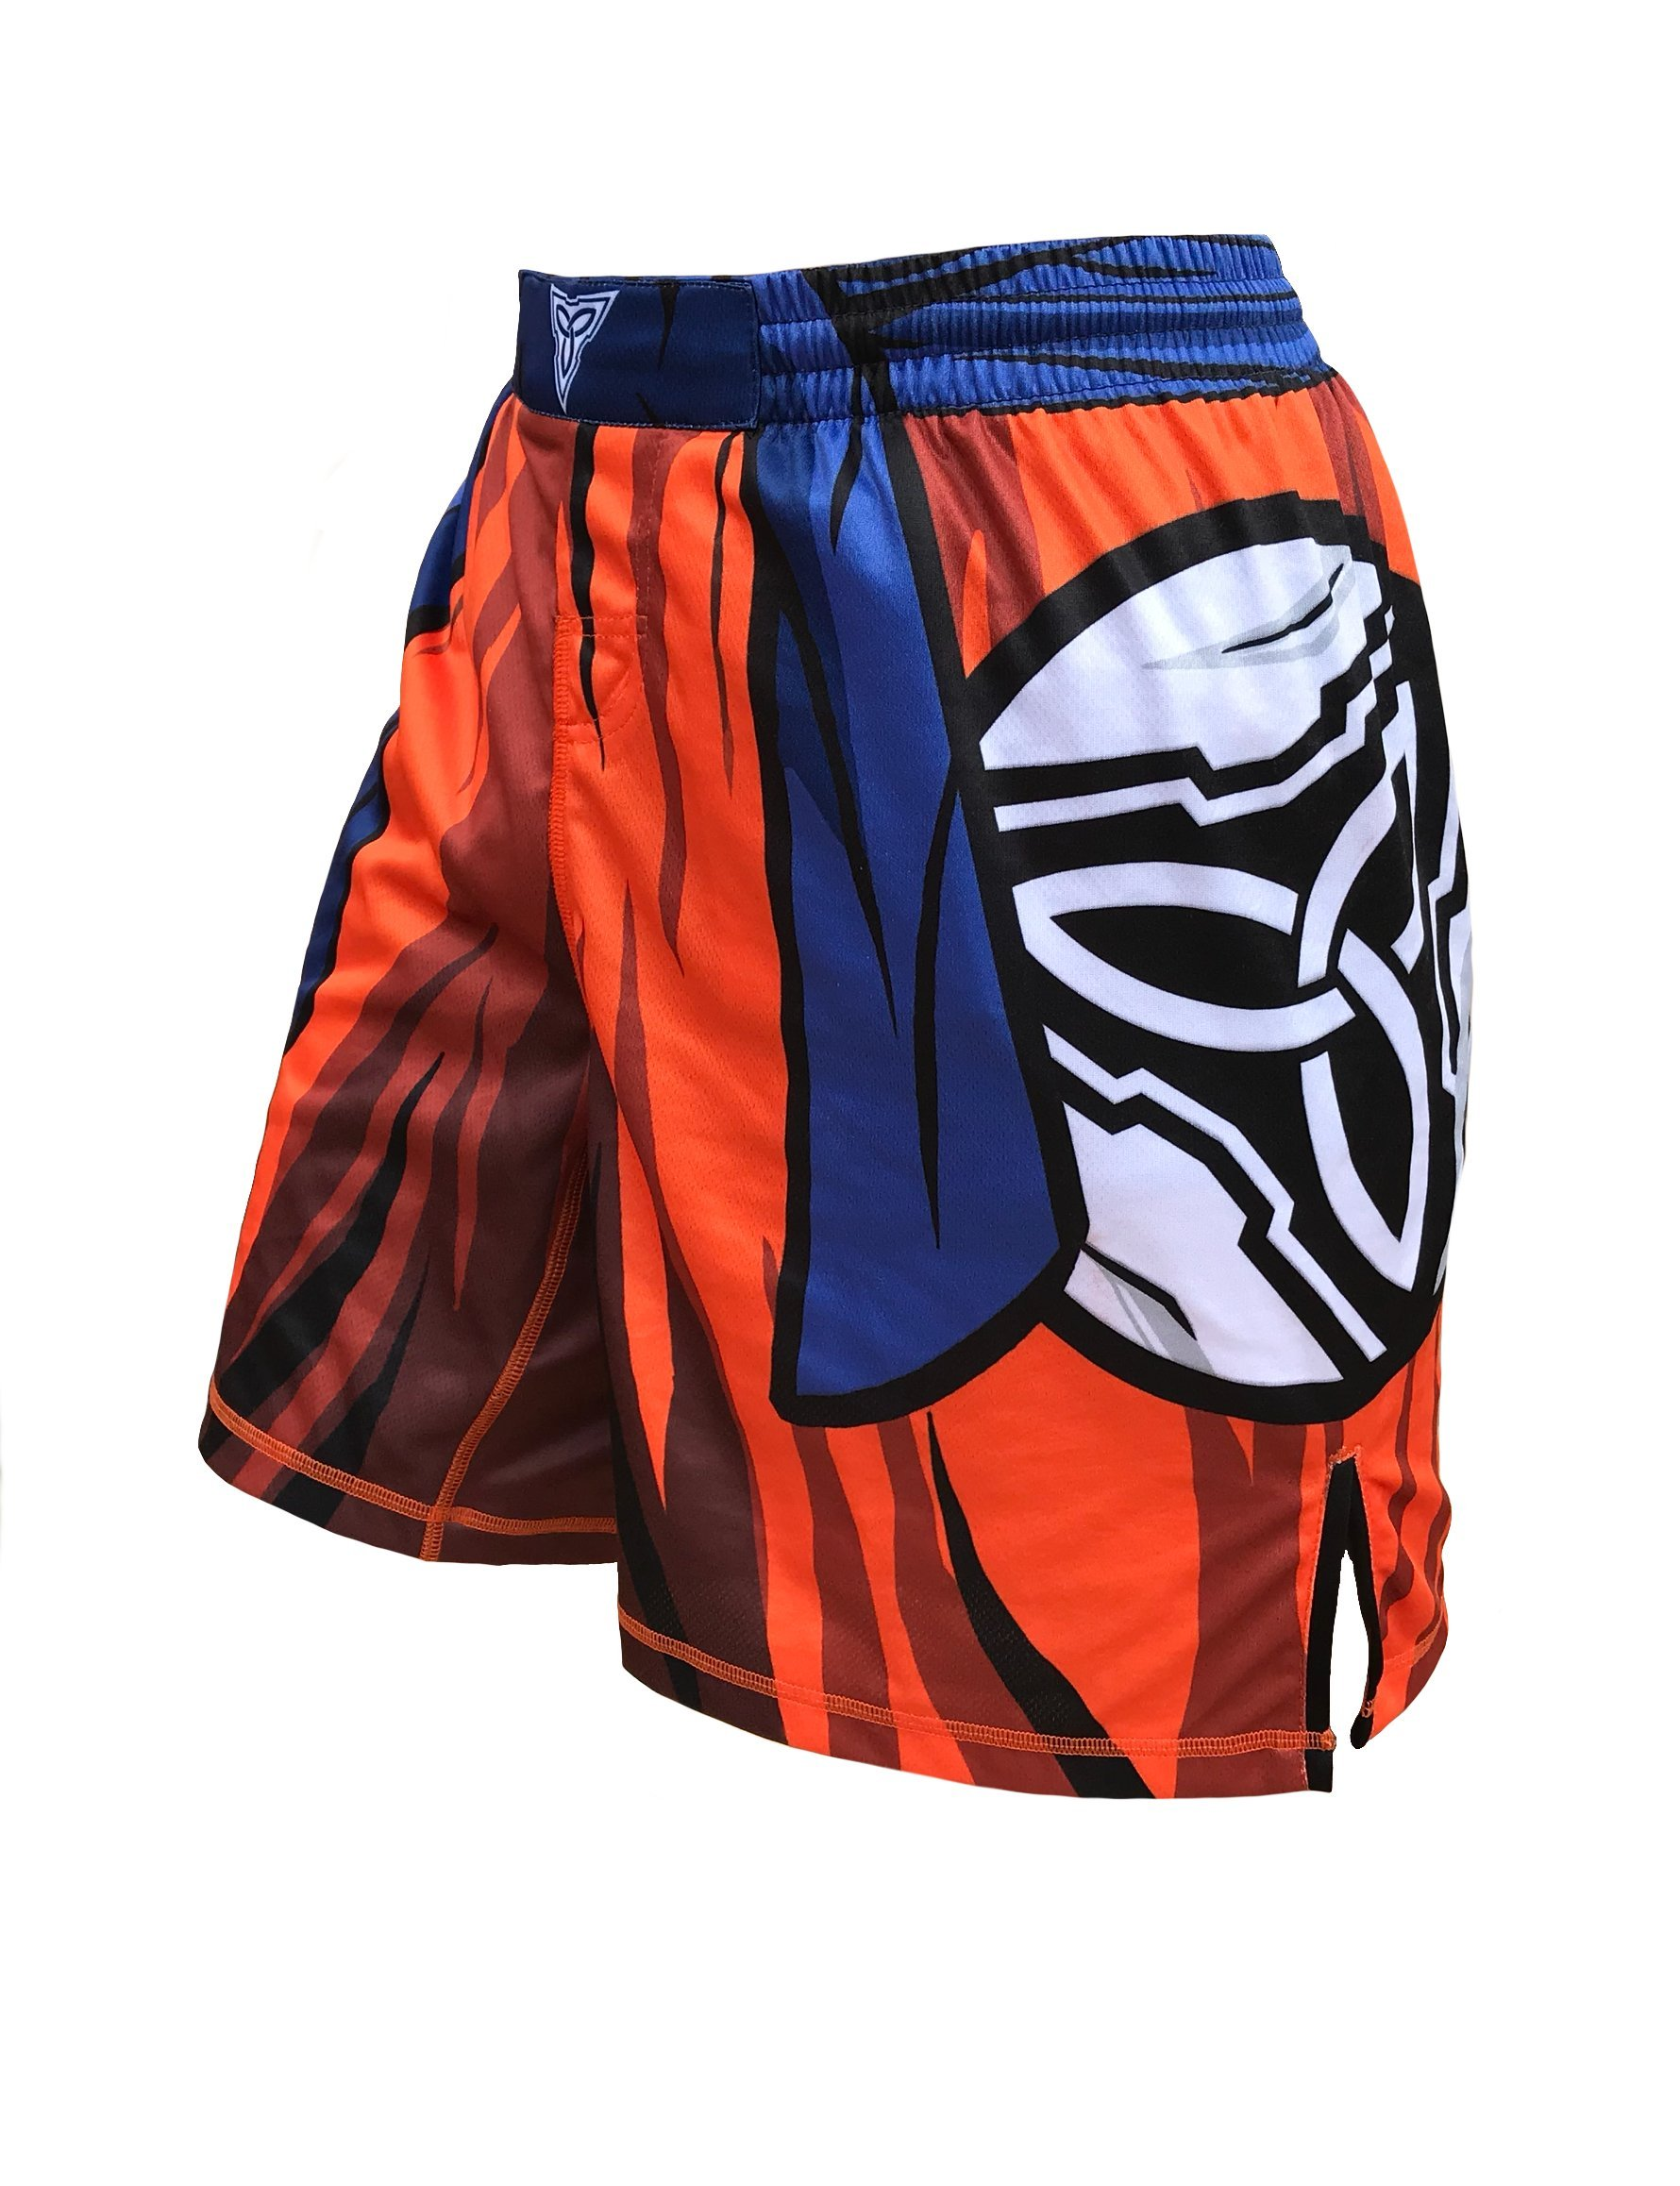 Level Up 9000- Kamesenryu Fight Shorts Youths & Mens (Adult S: 30''-32'') by TRI-TITANS